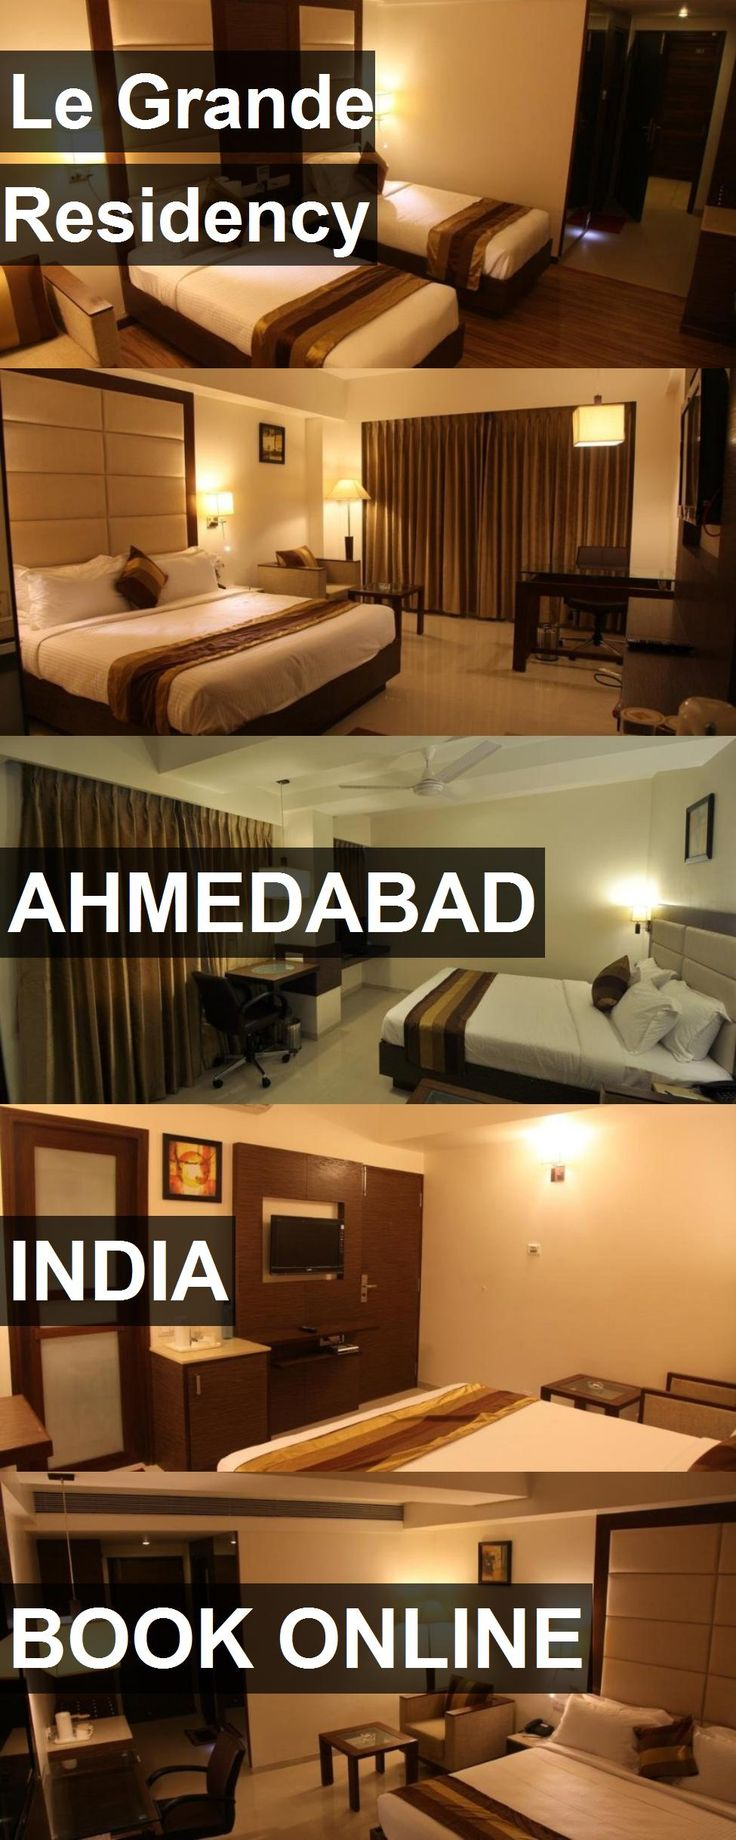 Hotel Le Grande Residency in Ahmedabad, India. For more information, photos, reviews and best prices please follow the link. #India #Ahmedabad #travel #vacation #hotel